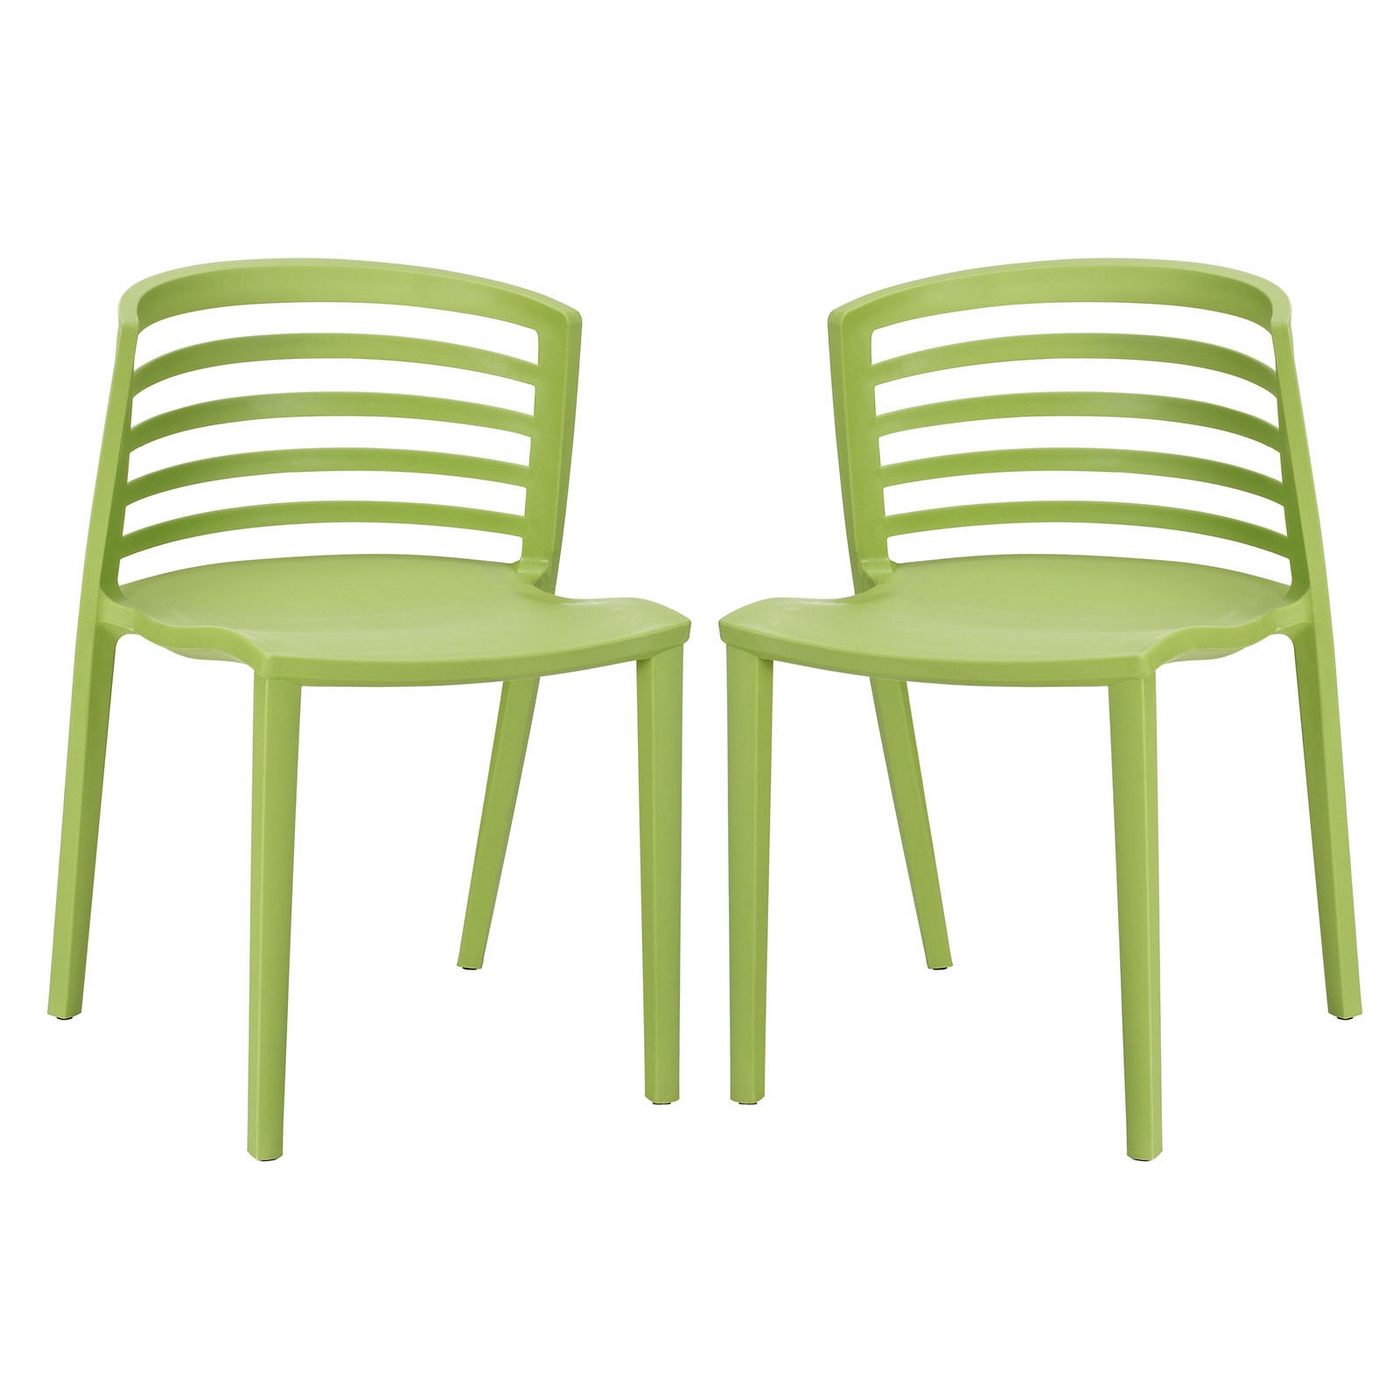 Curvy contemporary stackable molded plastic dining chairs for Contemporary plastic dining chairs